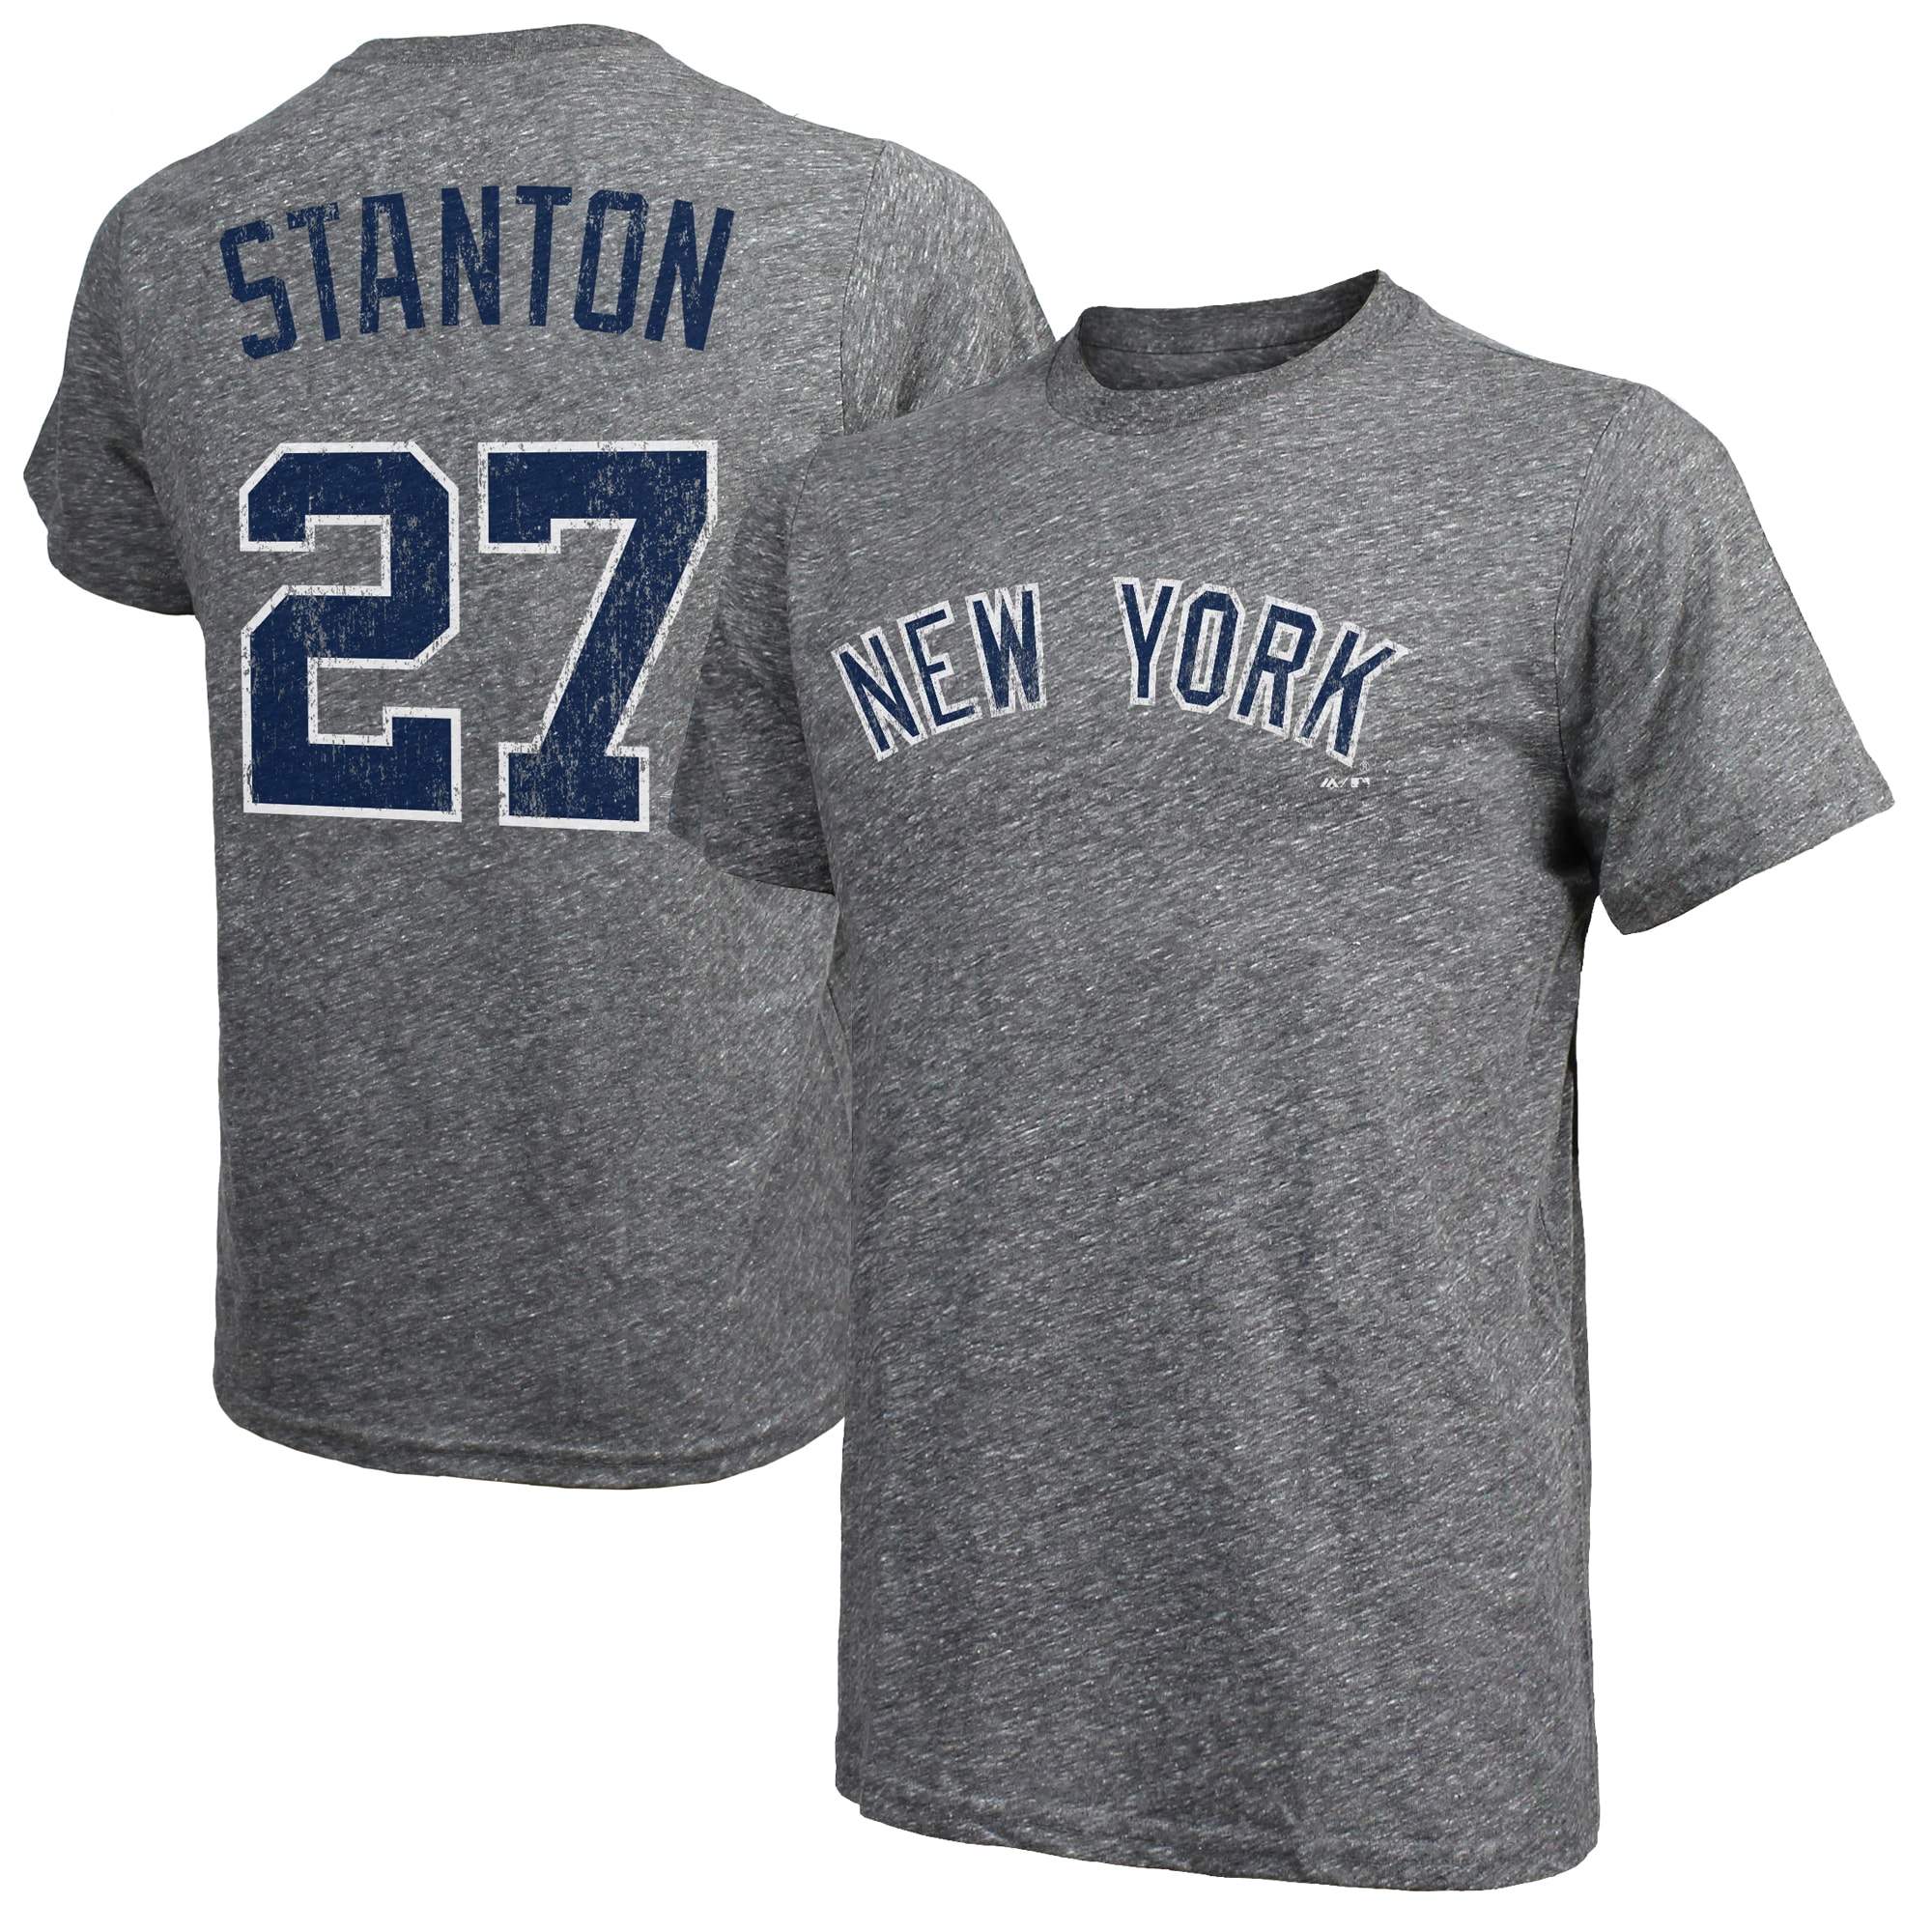 Giancarlo Stanton New York Yankees Majestic Threads Name & Number Tri-Blend T-Shirt - Gray